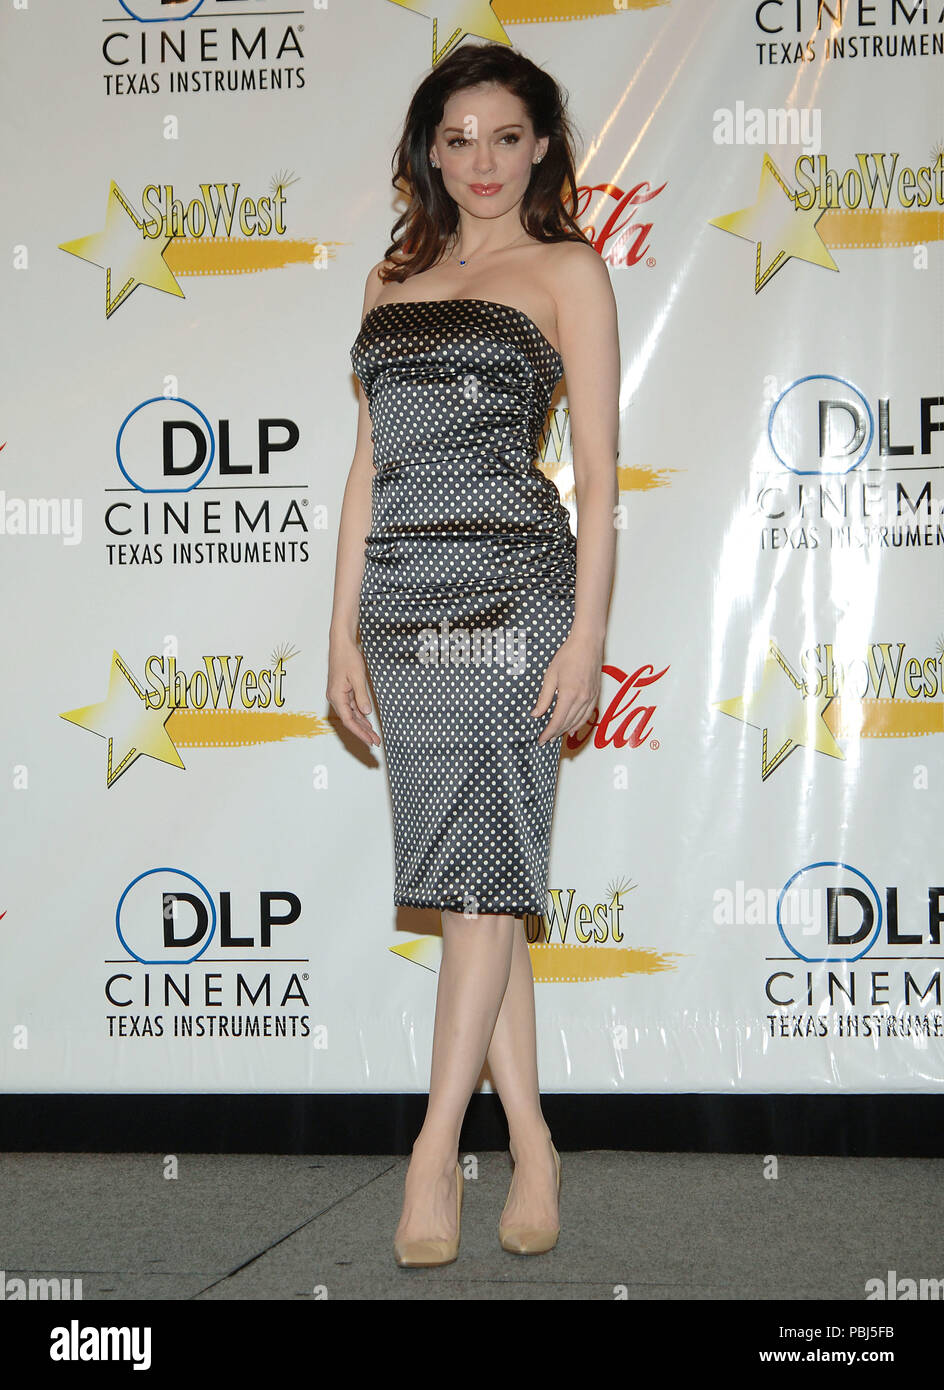 Rose Mcgowan Backstage At Showest In Paris Hotel Inlas Vegas Full Lenght Gray Dress Mcgowanrose029 Red